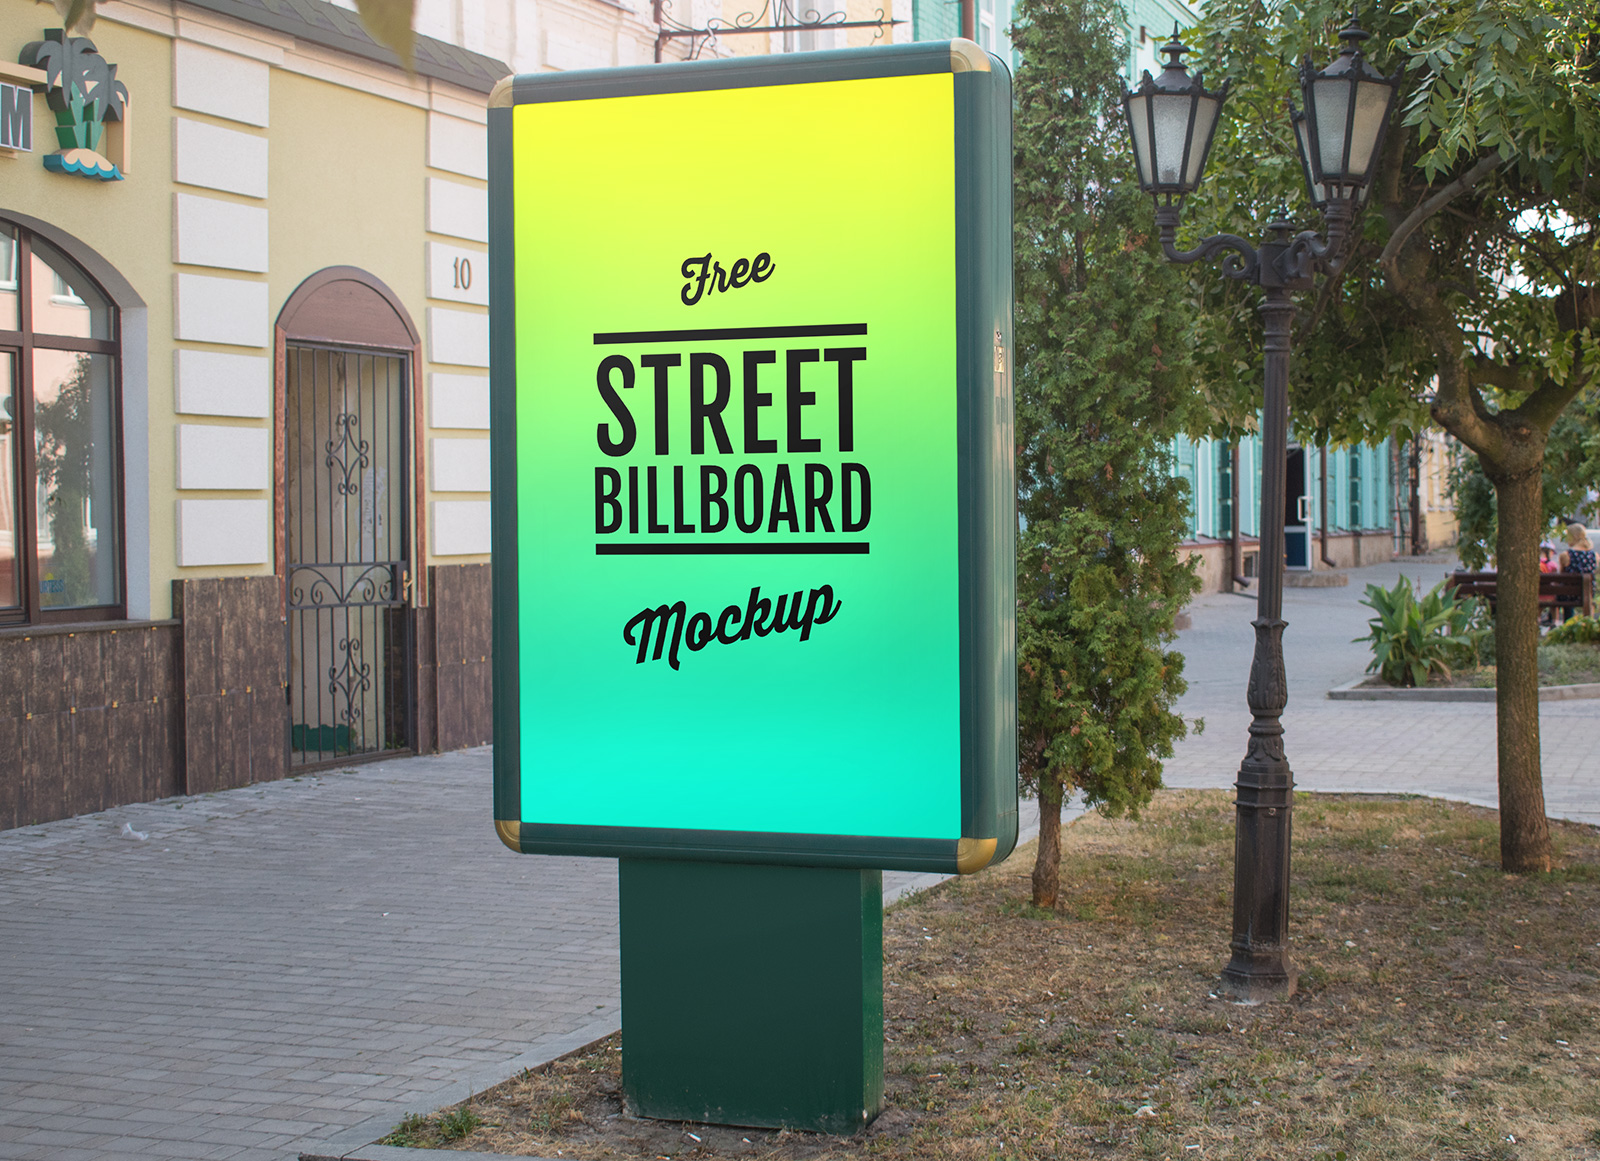 Free-Outdoor-Advertising-Display-Street-Billboard-Mockup-PSD